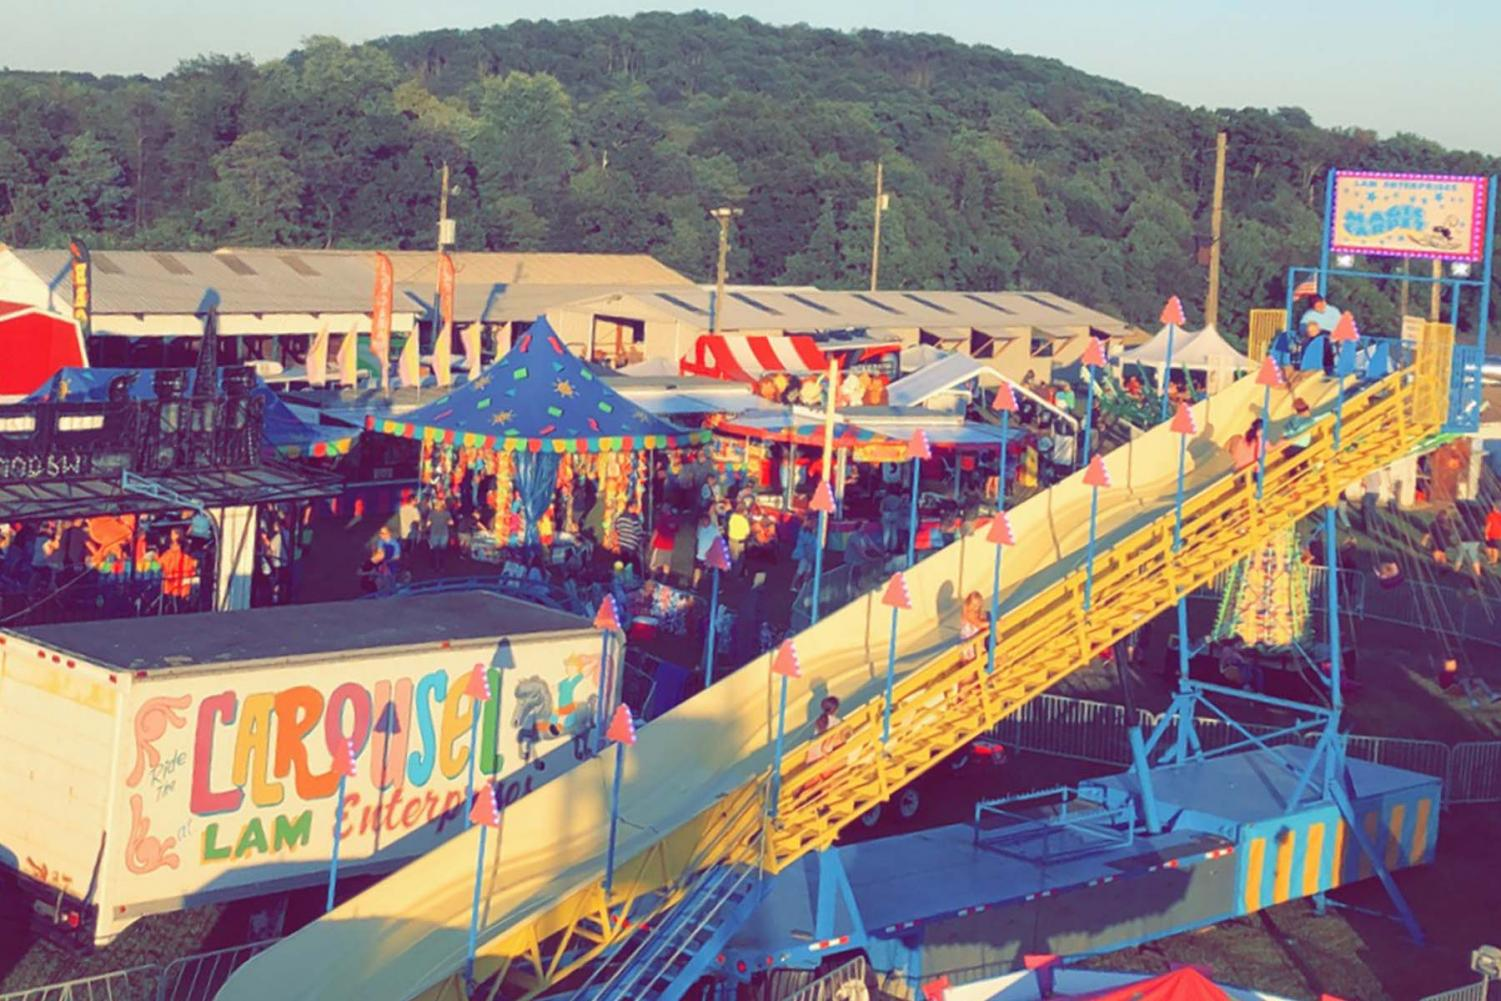 The sun sets on the Big Knob Grange Fair as viewed from the Ferris Wheel.